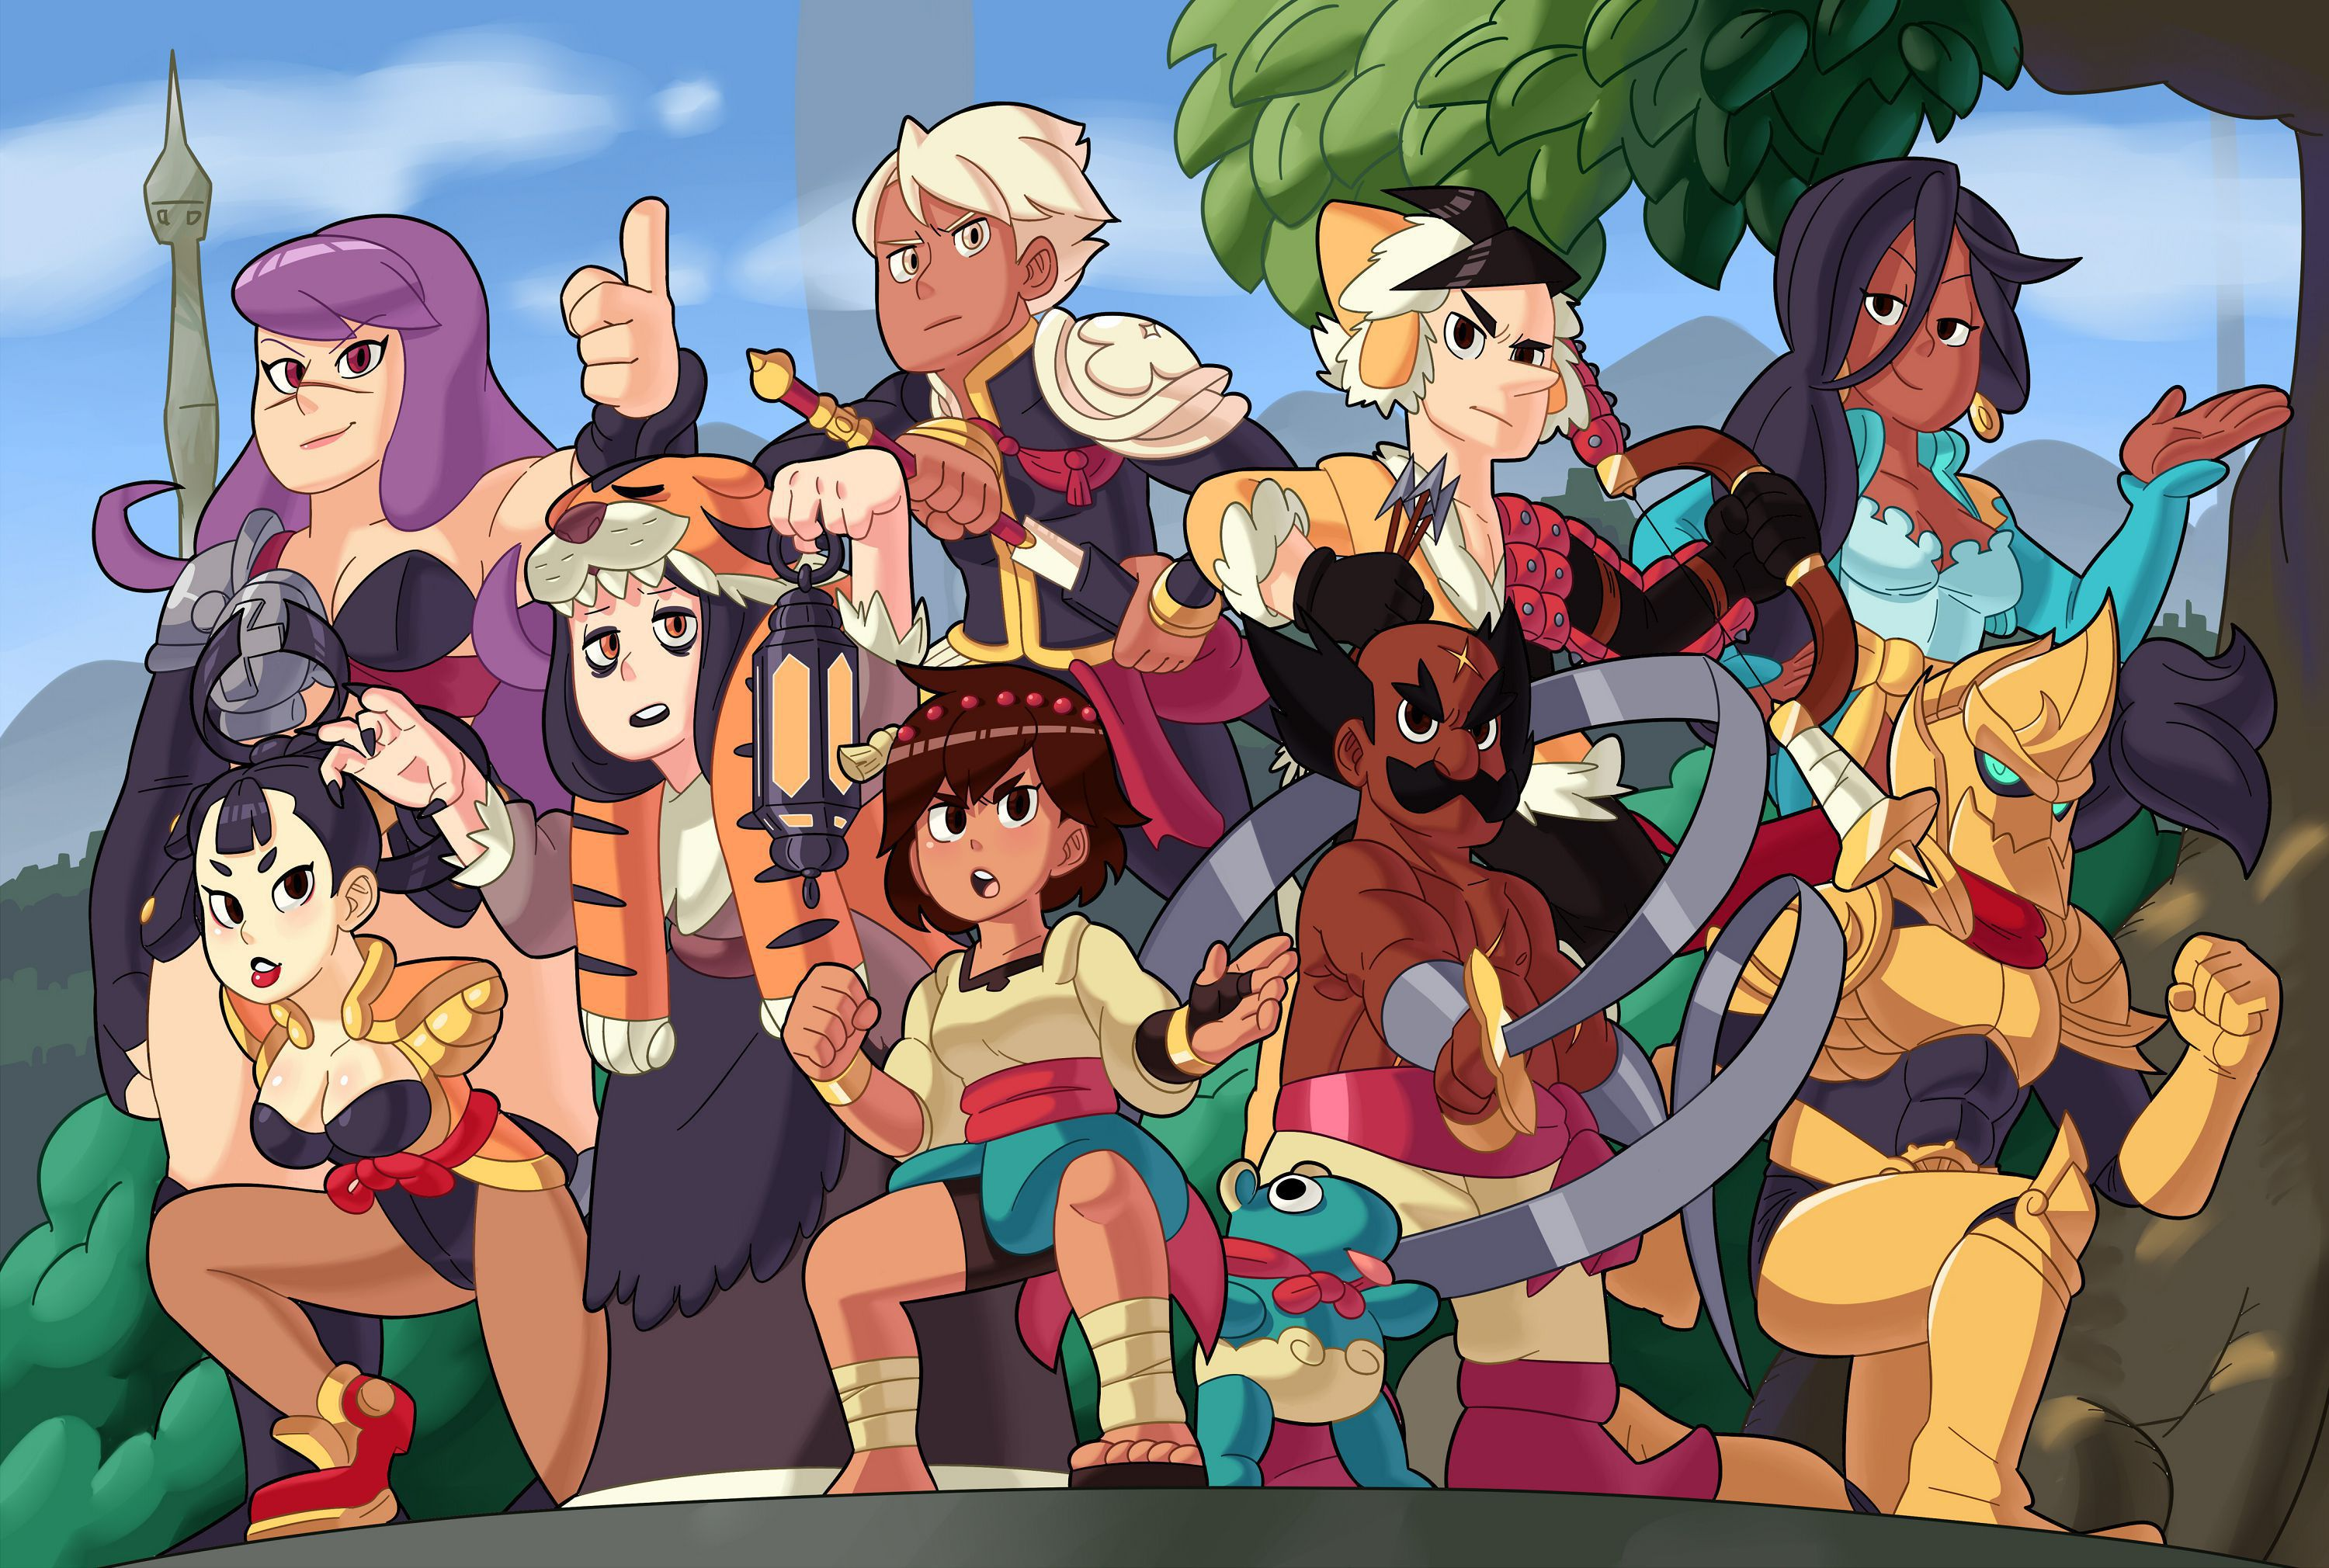 386891 Theolebrave Indivisible Fan Art Competition